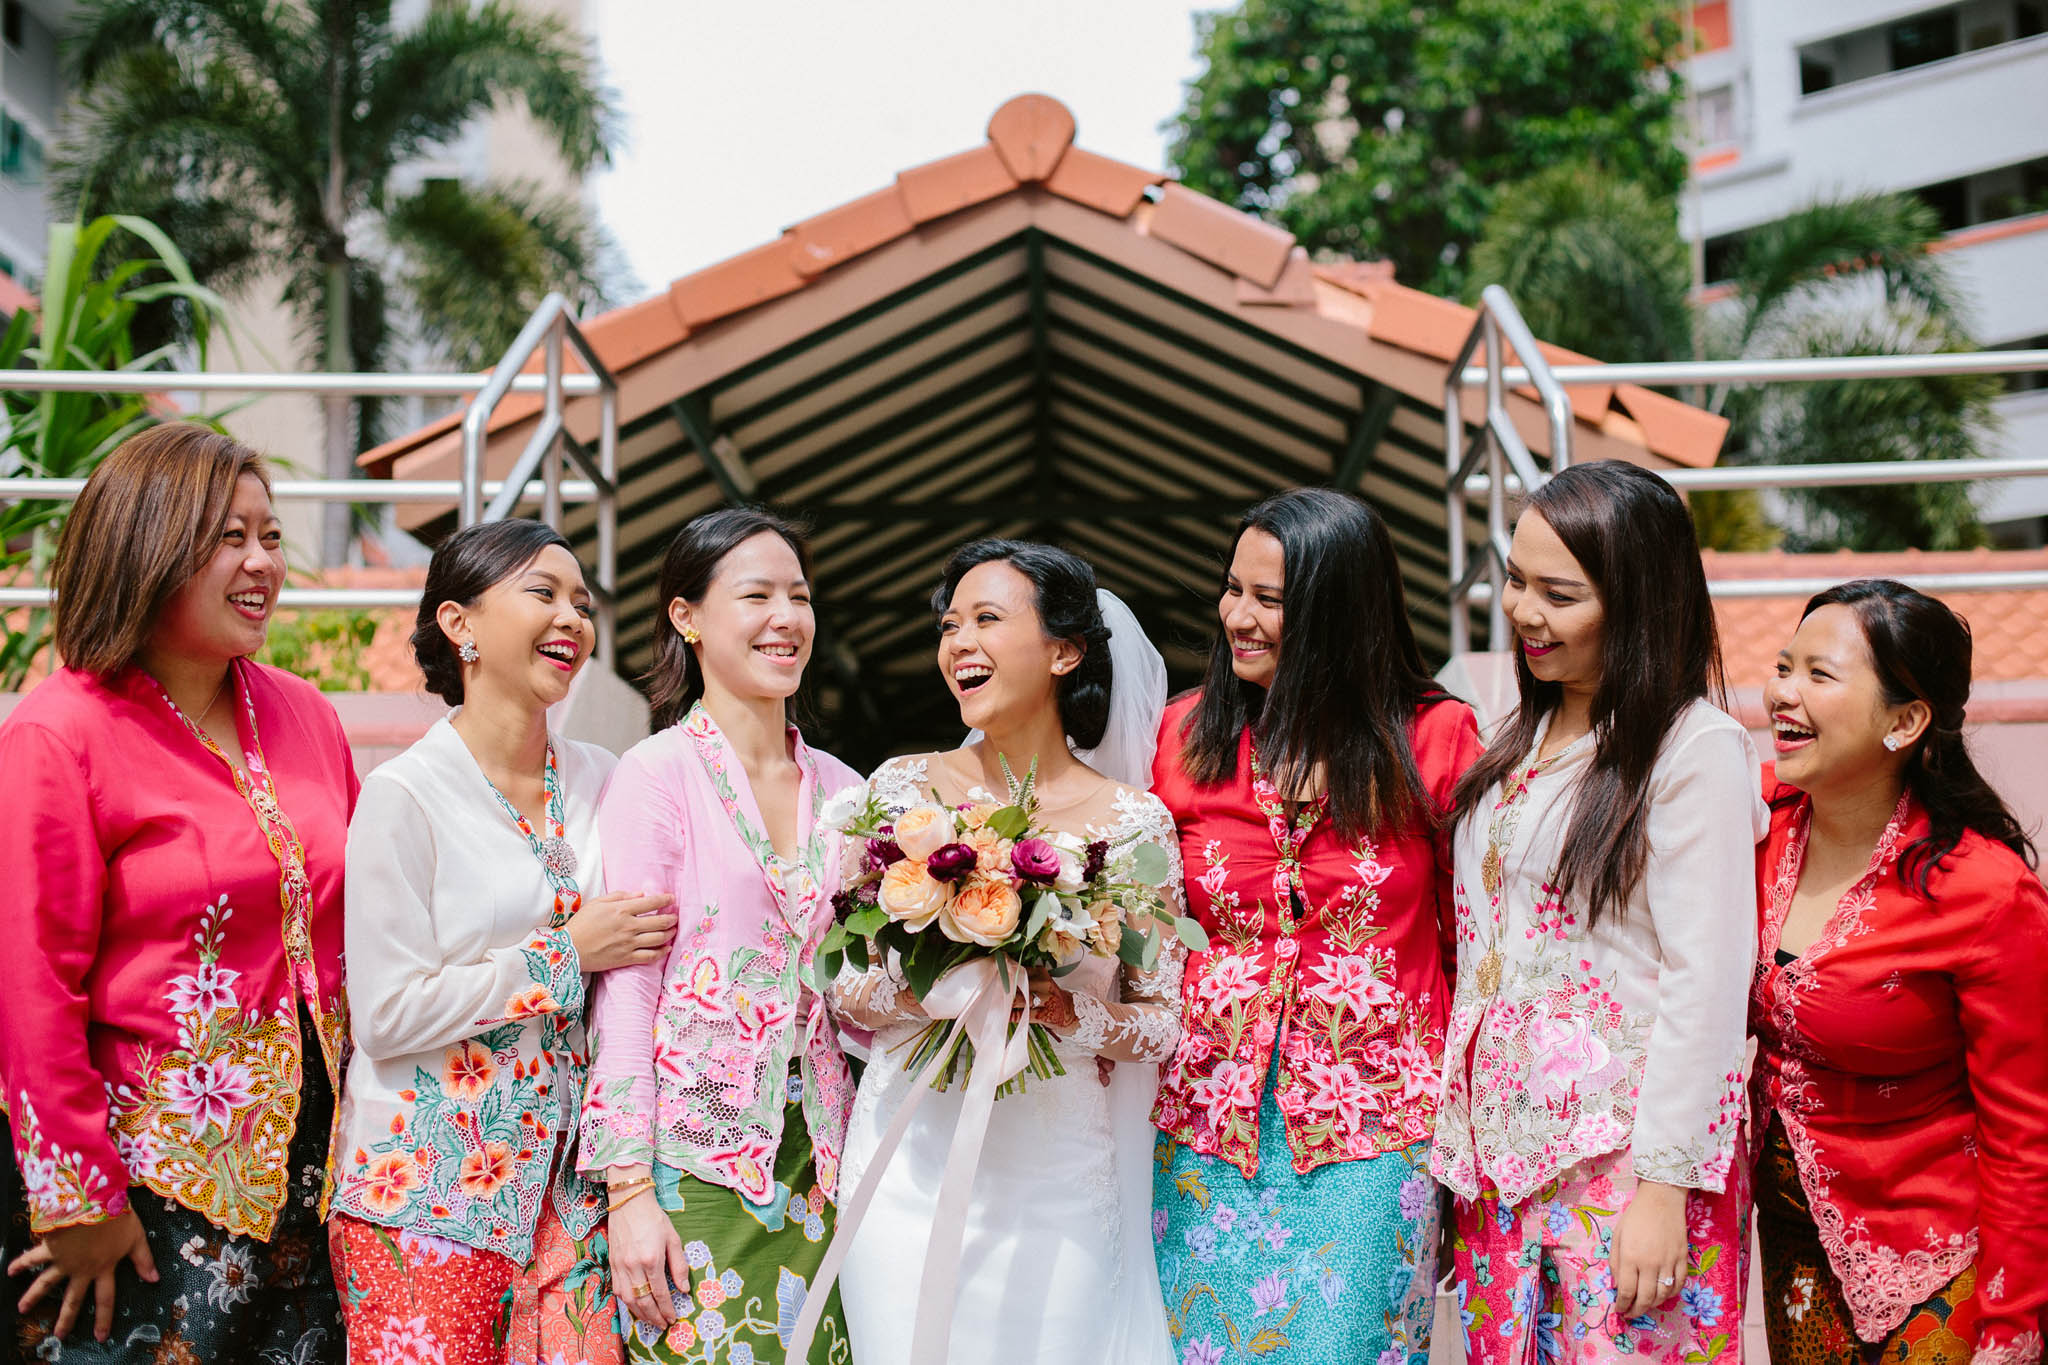 singapore-wedding-photographer-wedding-hafiana-teck-kuan-027.jpg